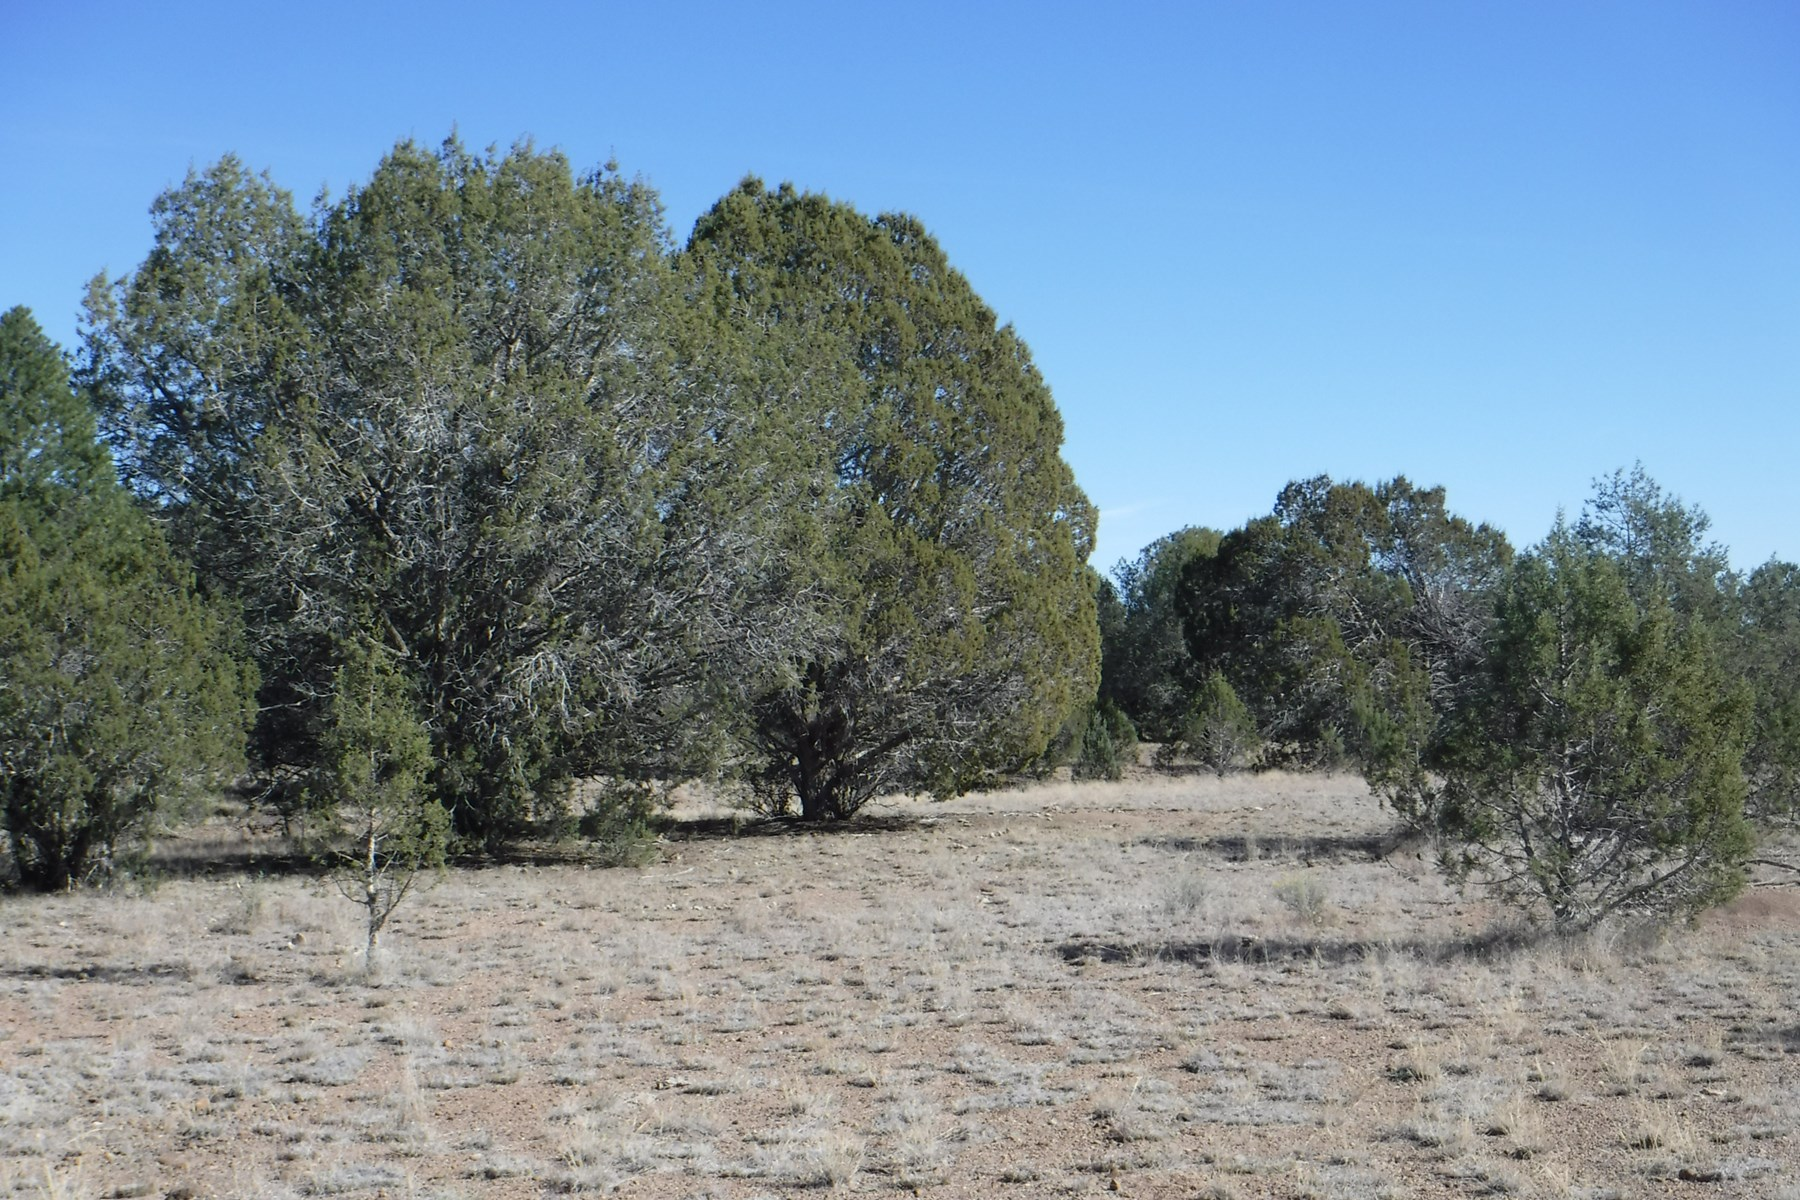 40 Acres for sale $18,000!  Owner Financing Possible